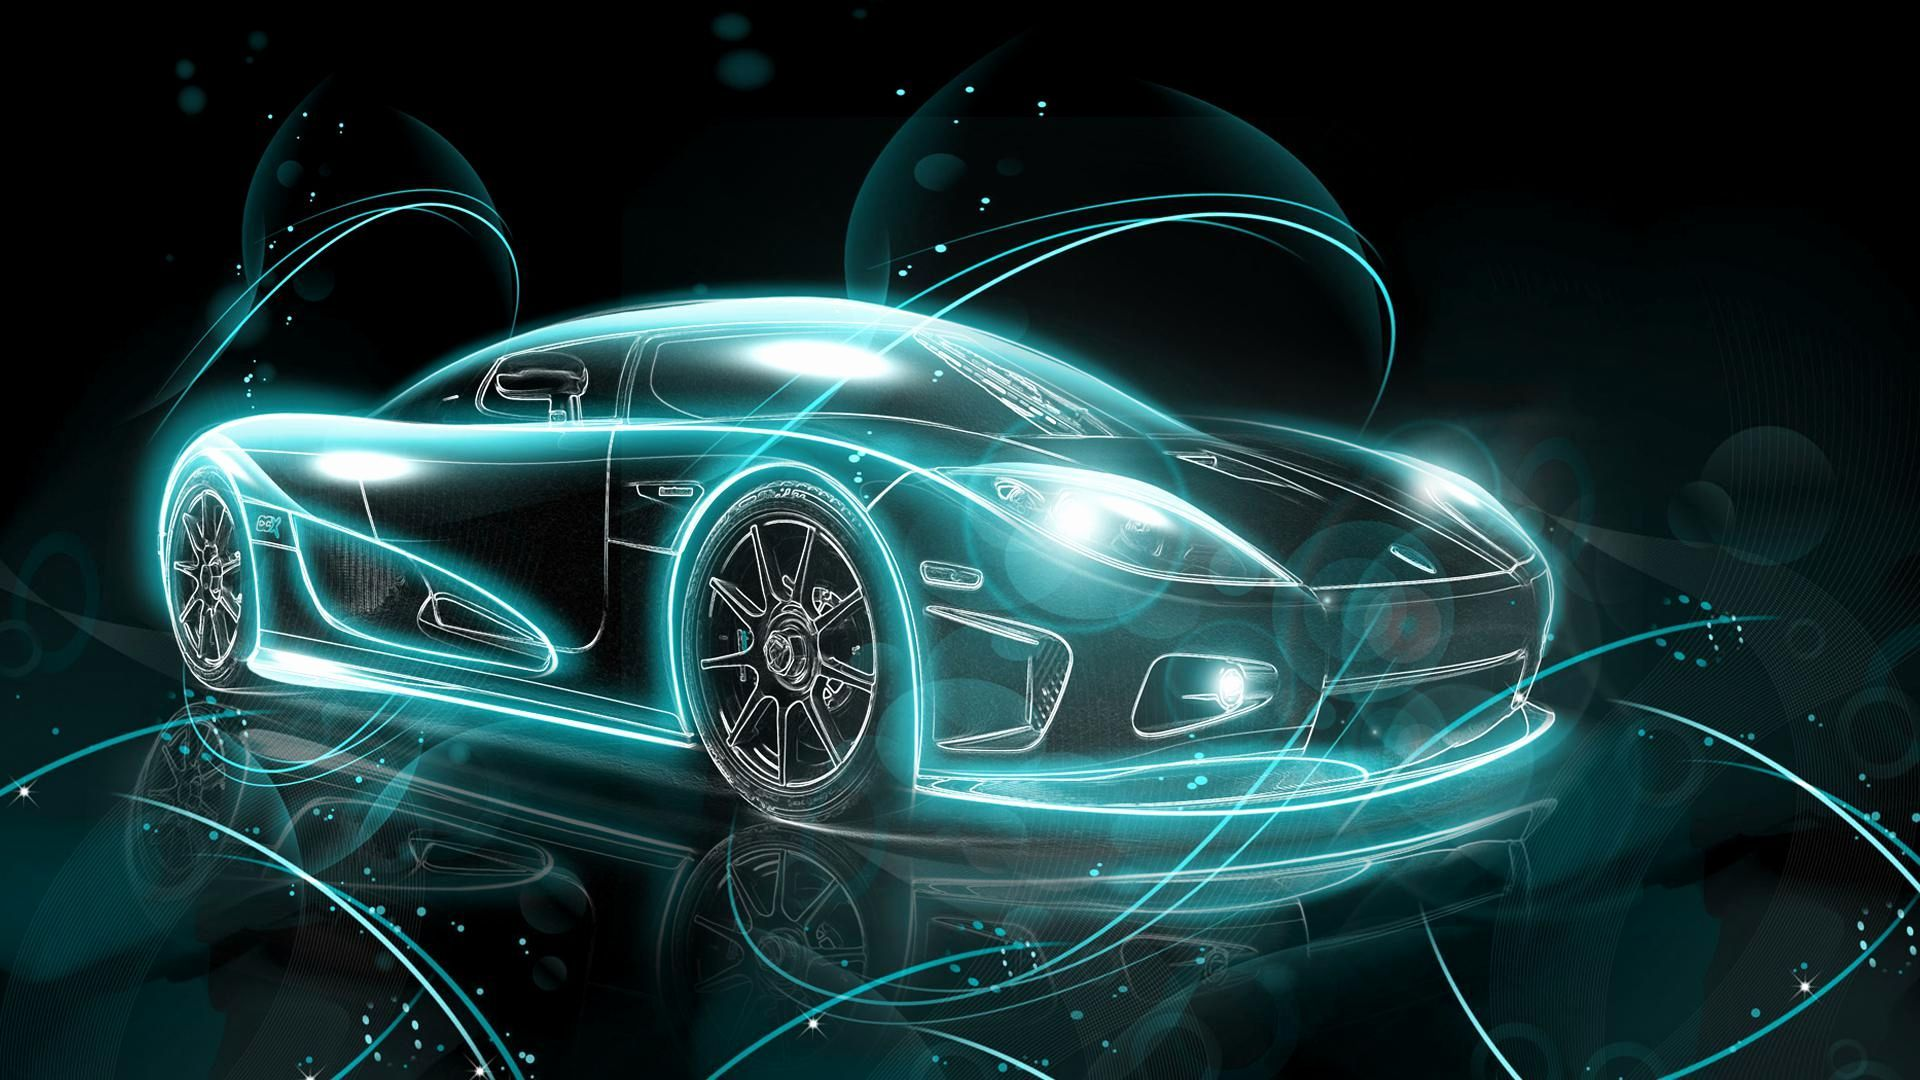 Cool Neon Cars Wallpapers - Top Free